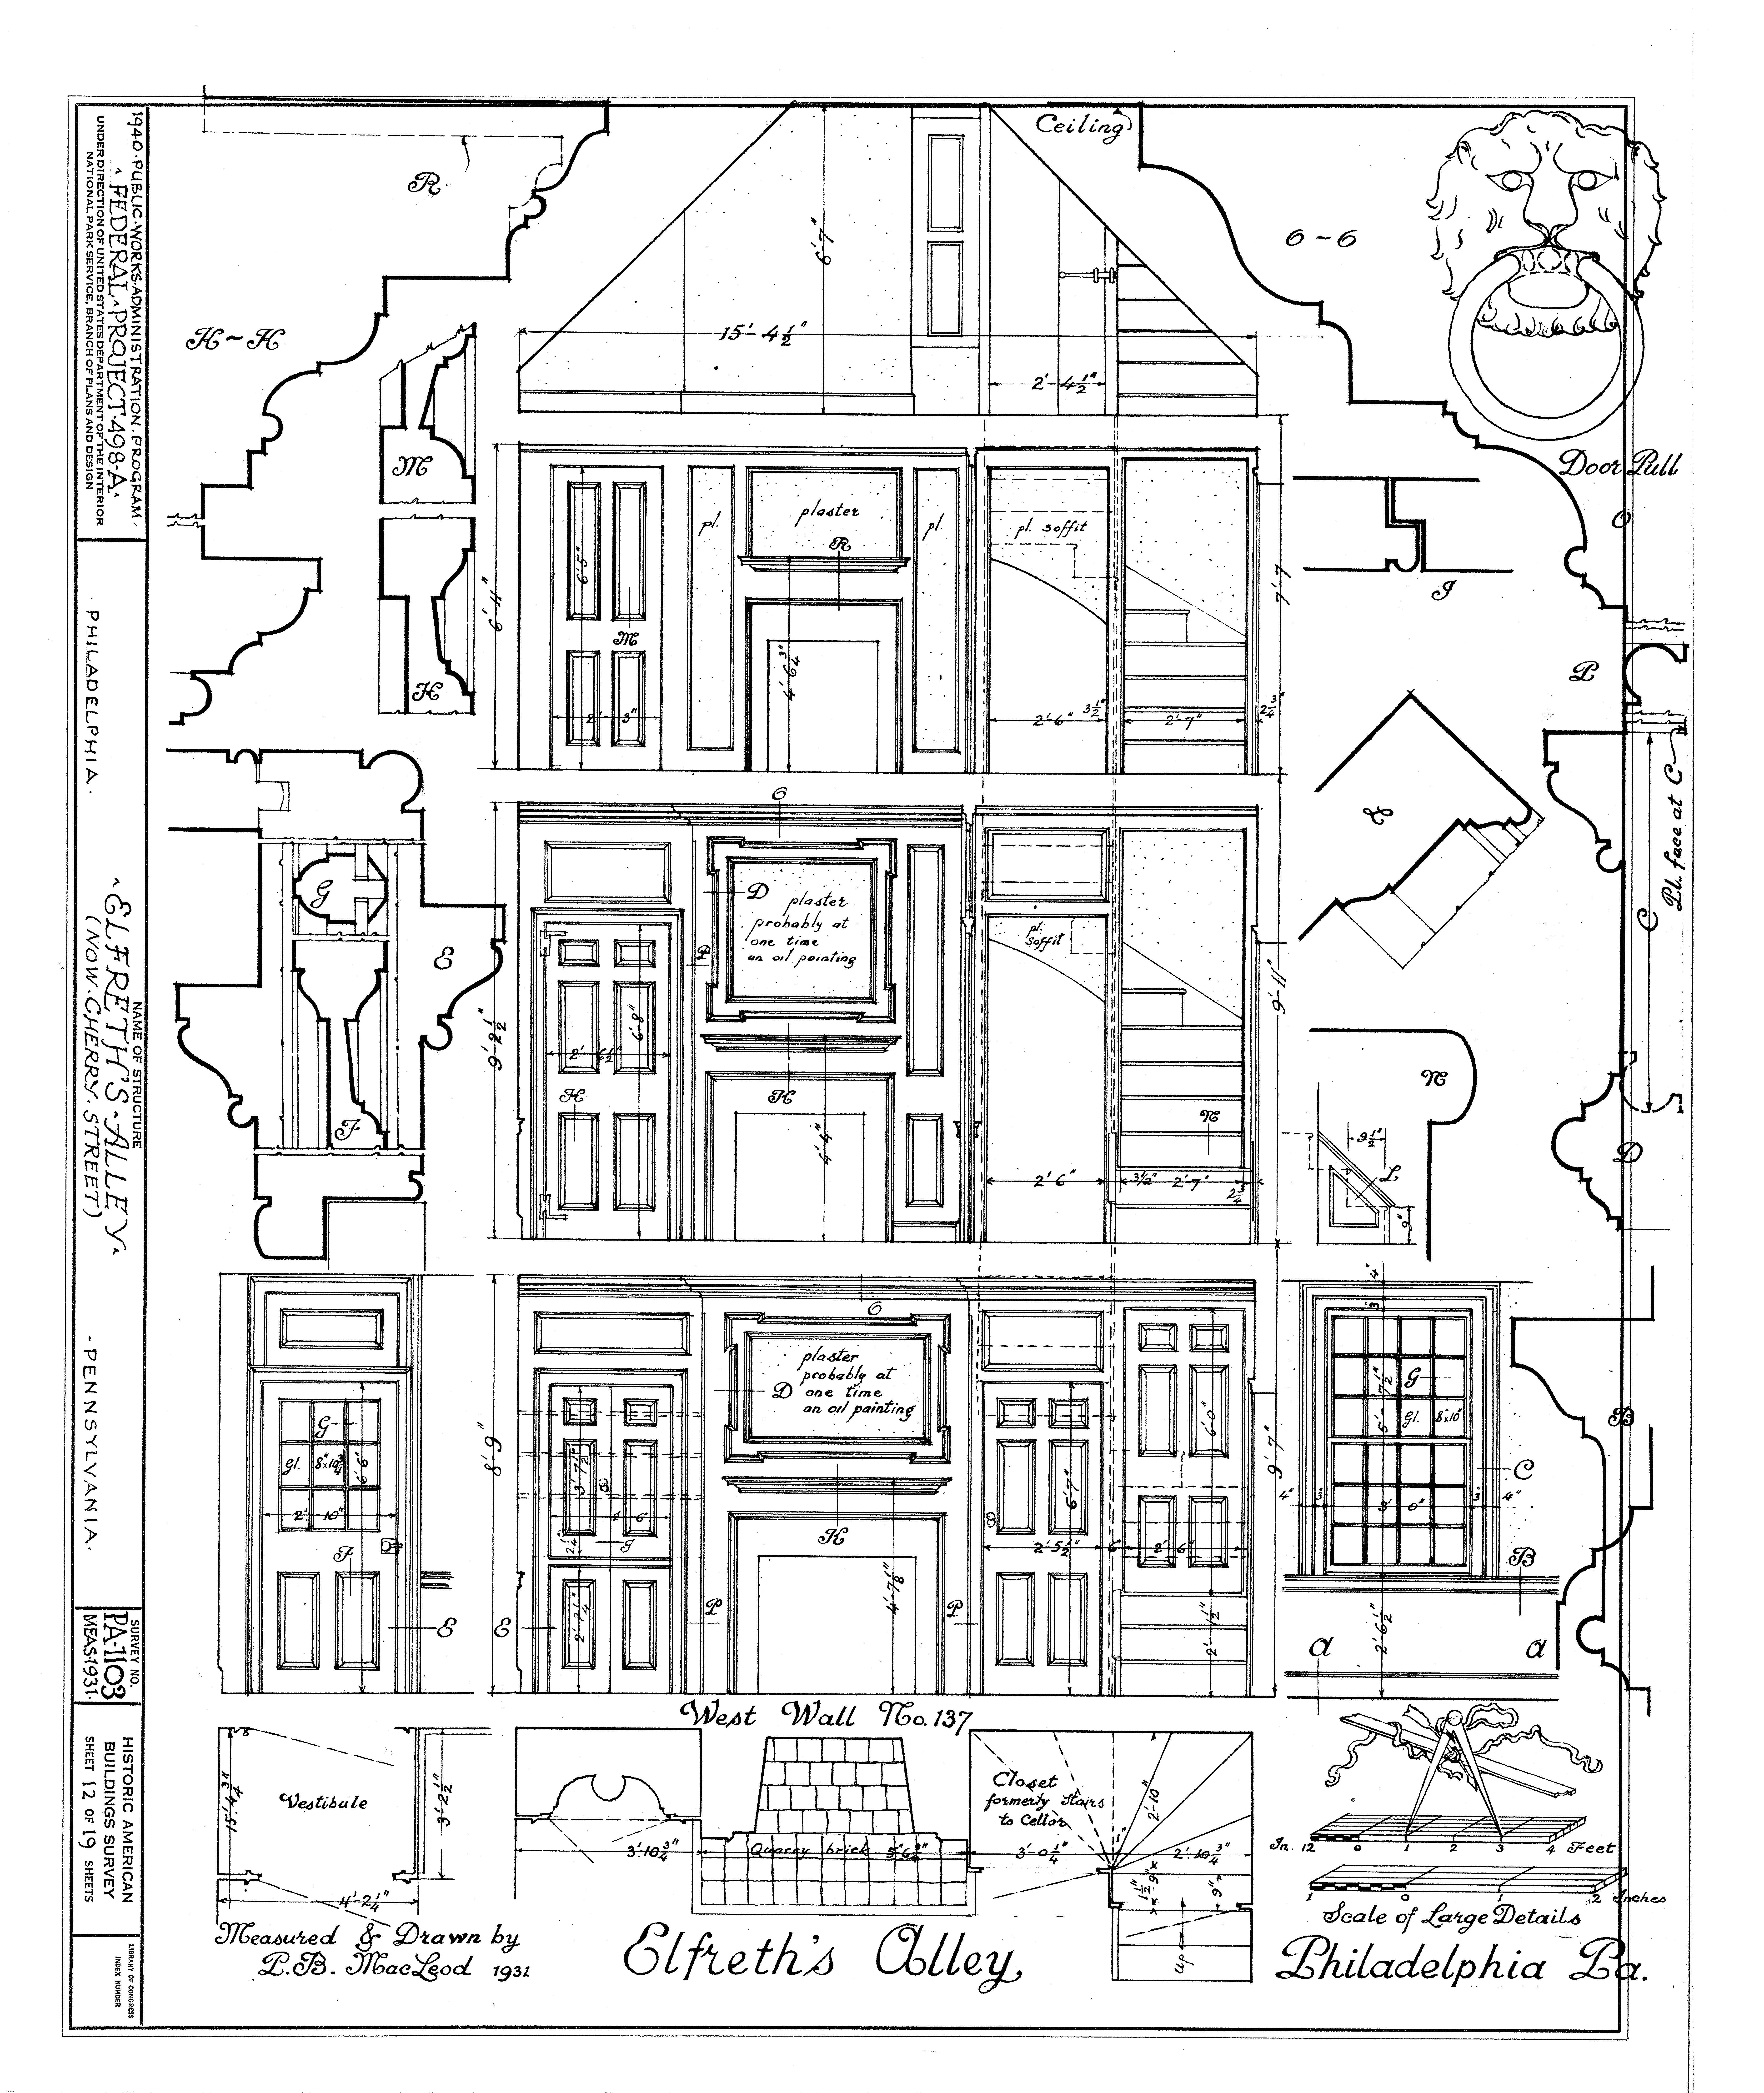 Blueprint of a house in Elfreth's Alley